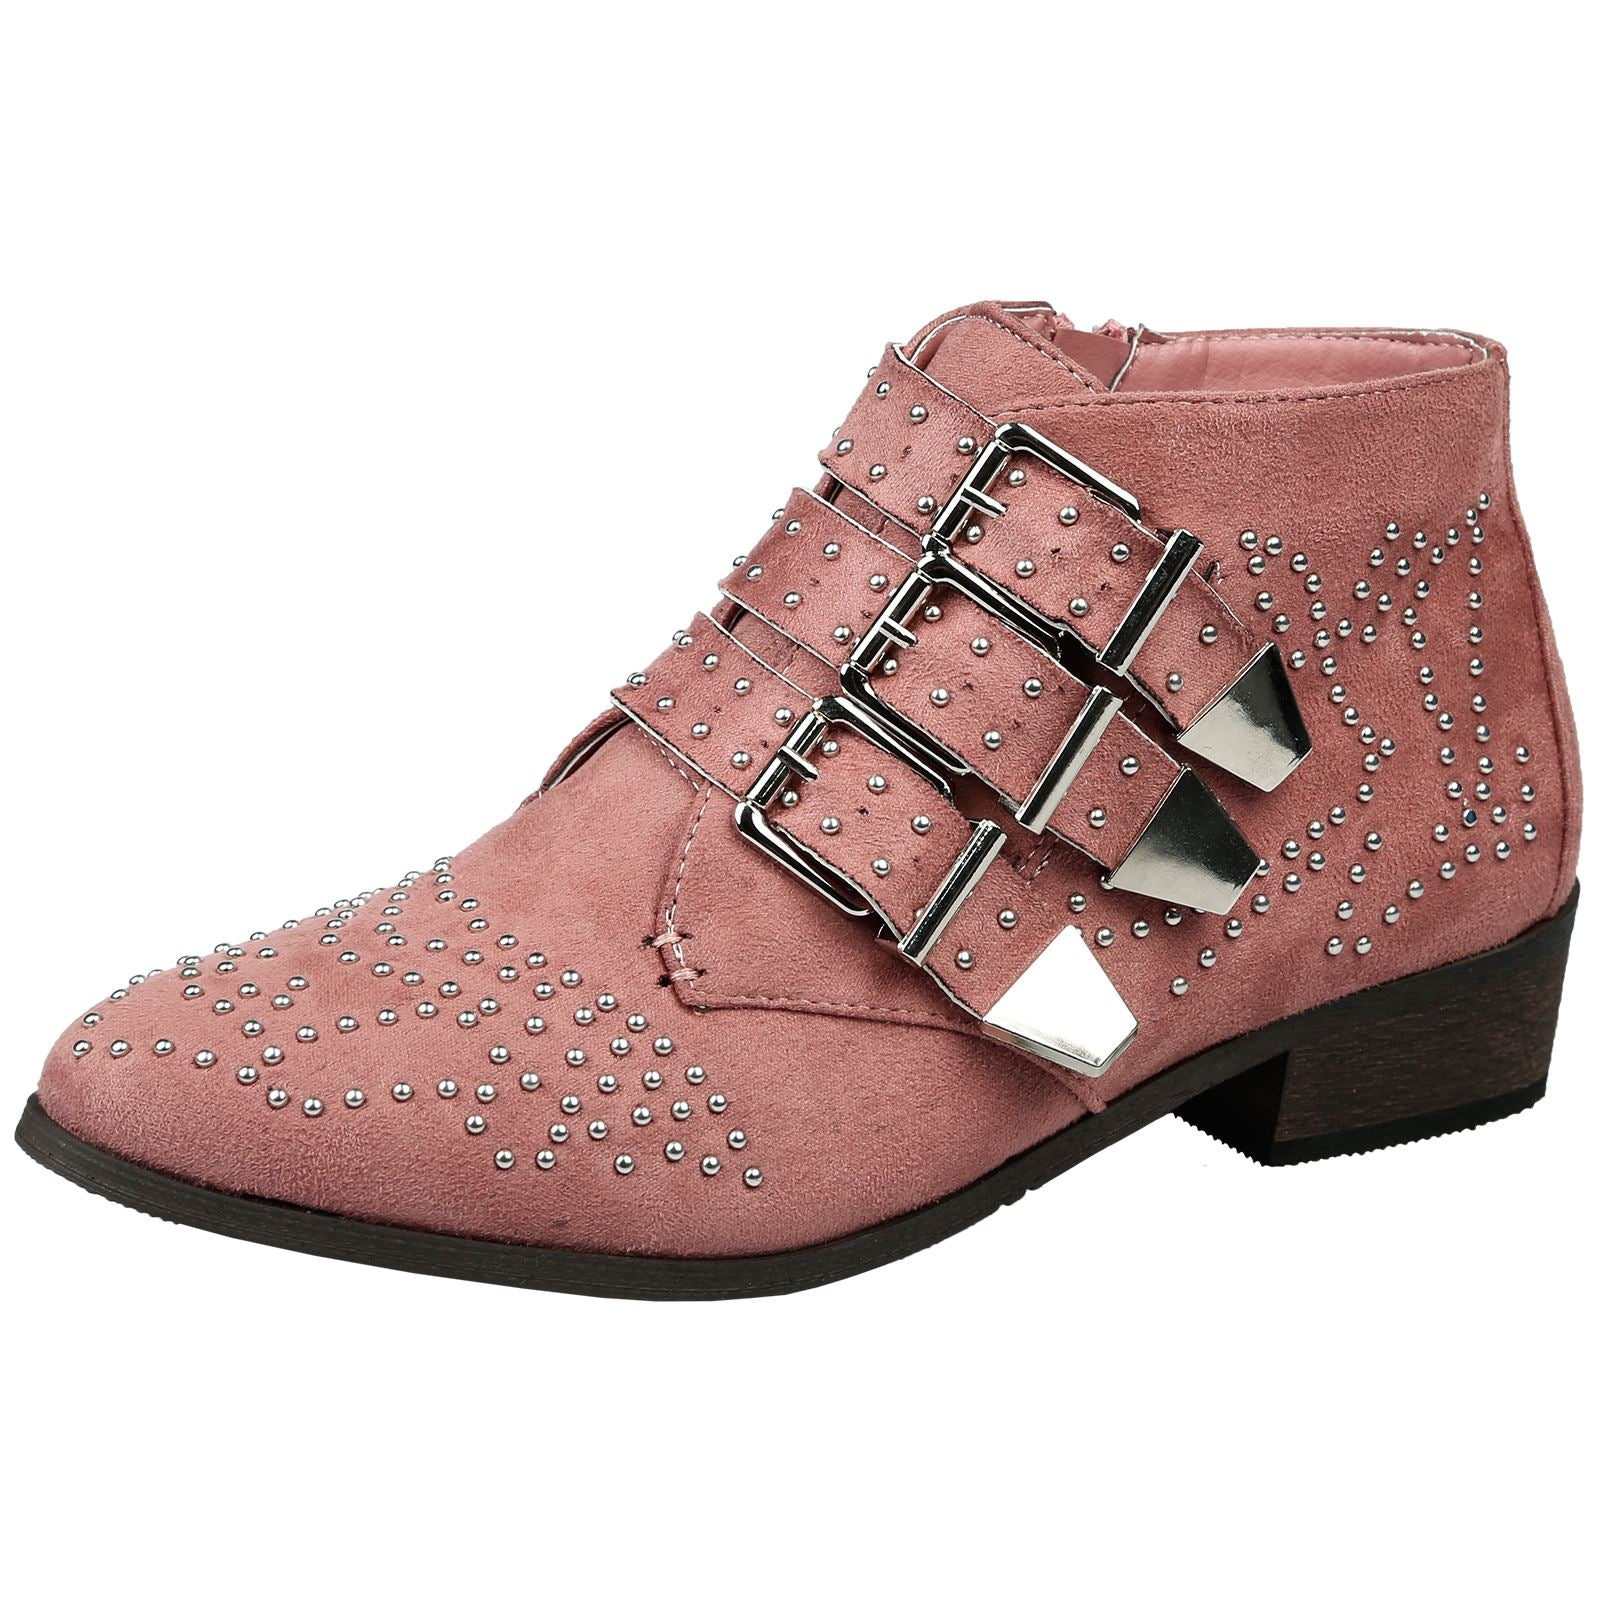 Liv Womens Studded Biker Ankle Boots in Pink Faux Suede